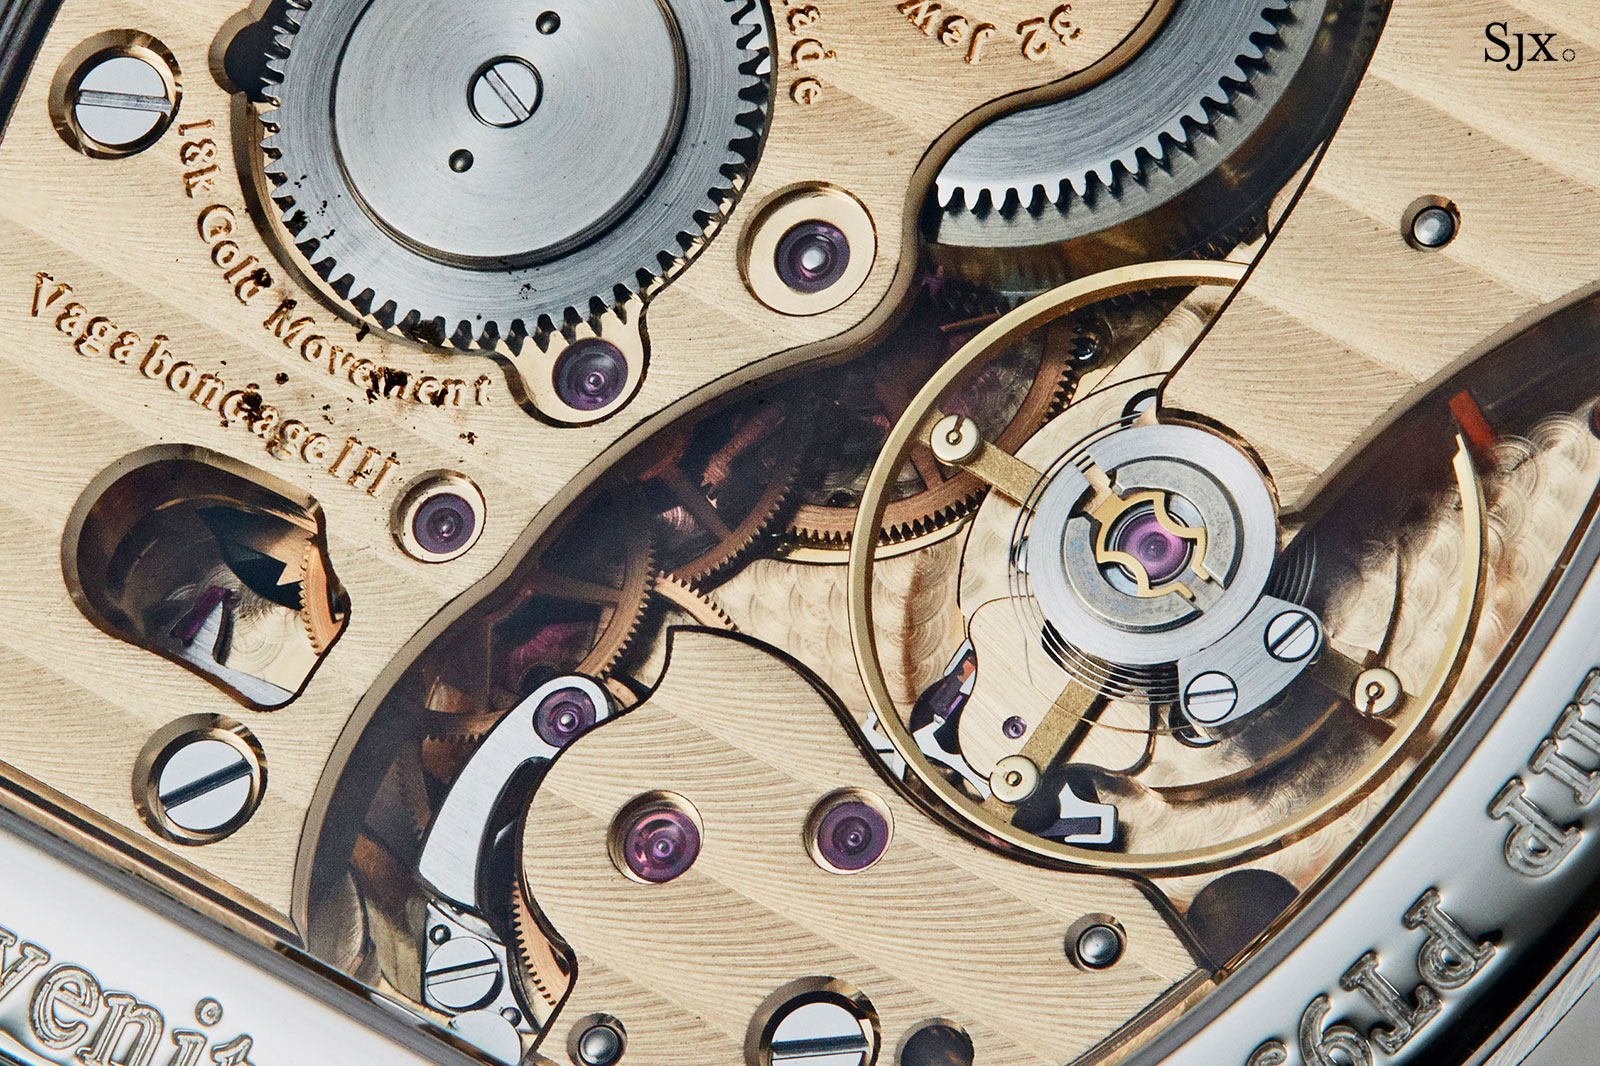 FP Journe Vagabondage III diamonds 6